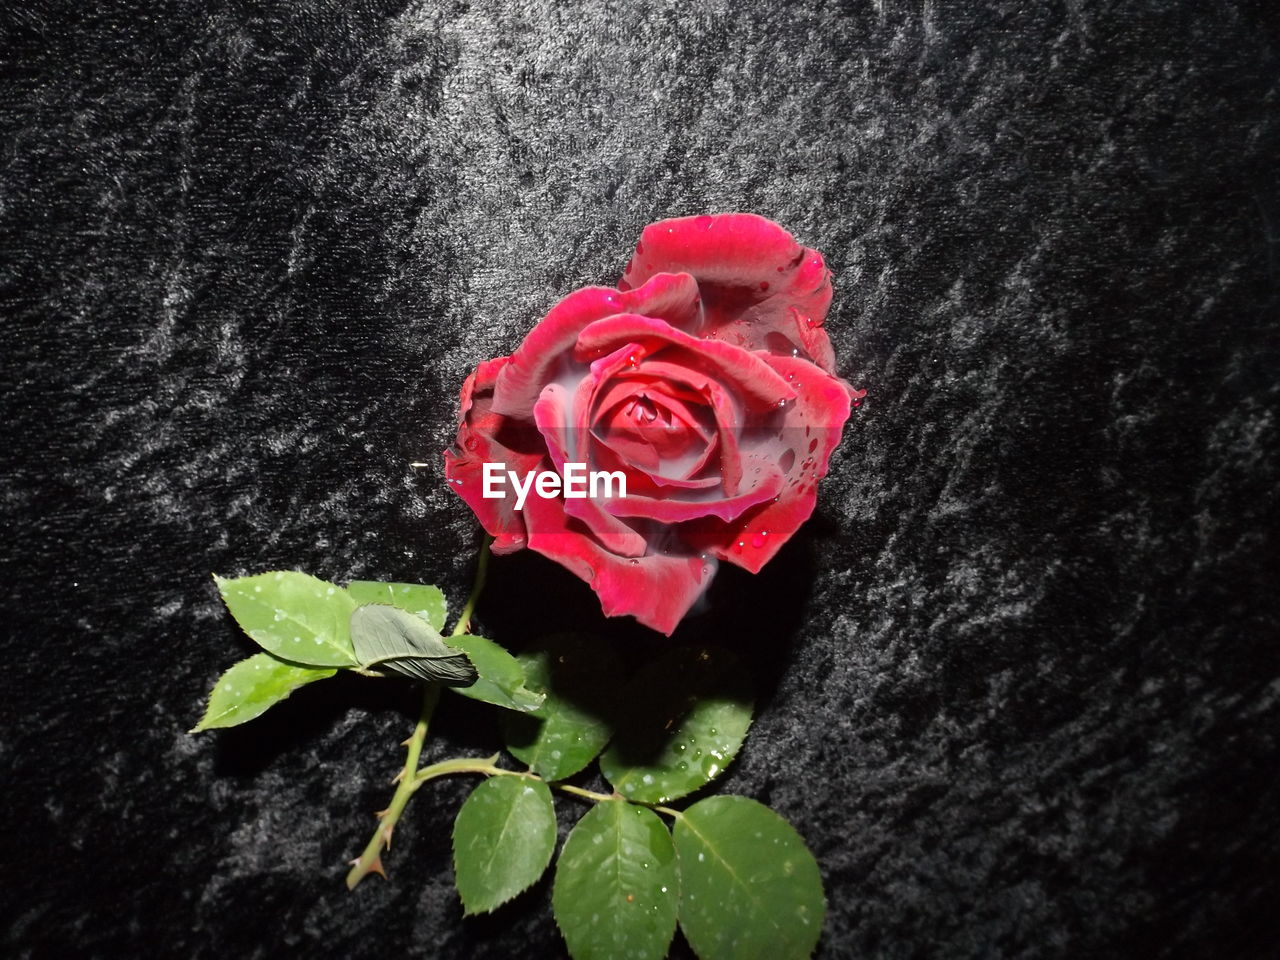 flower, petal, rose - flower, fragility, leaf, plant, nature, red, flower head, beauty in nature, freshness, growth, no people, close-up, blooming, outdoors, day, periwinkle